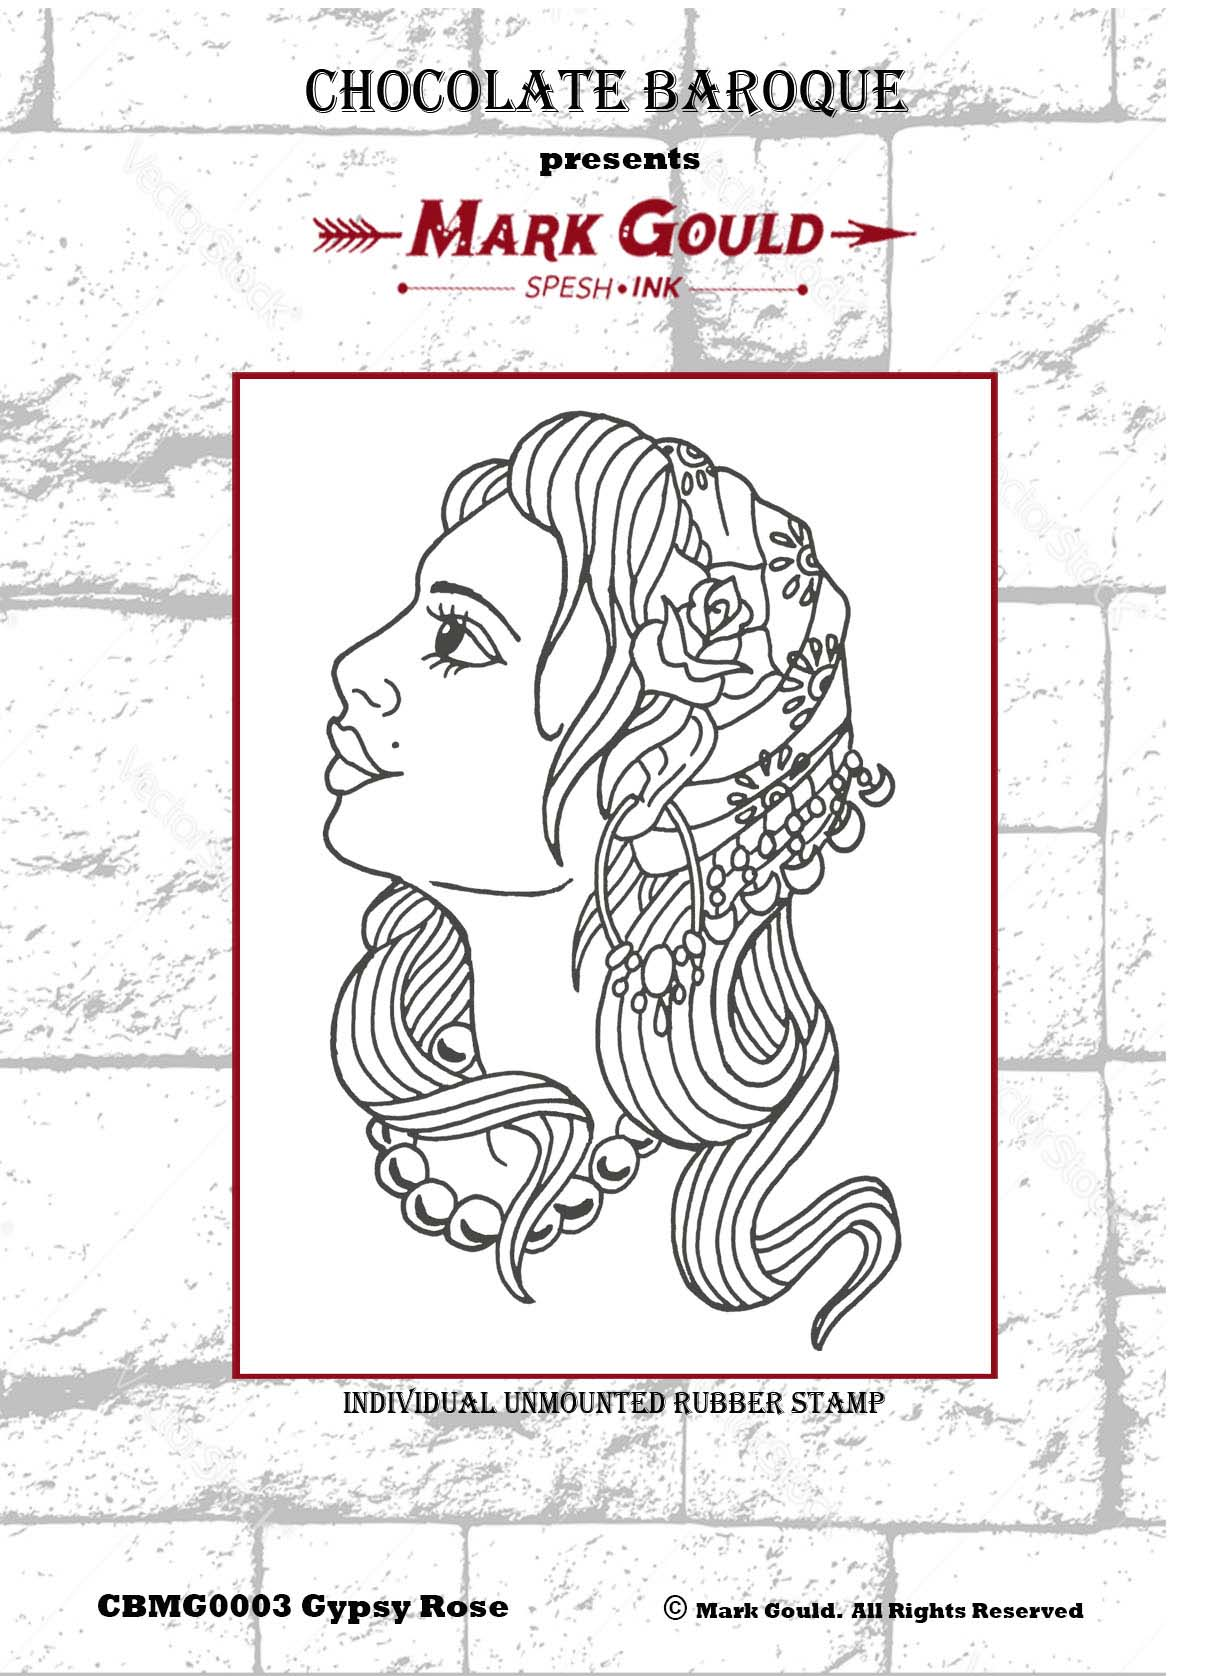 Mark Gould - Gypsy Rose individual unmounted rubber stamp - A6 ...